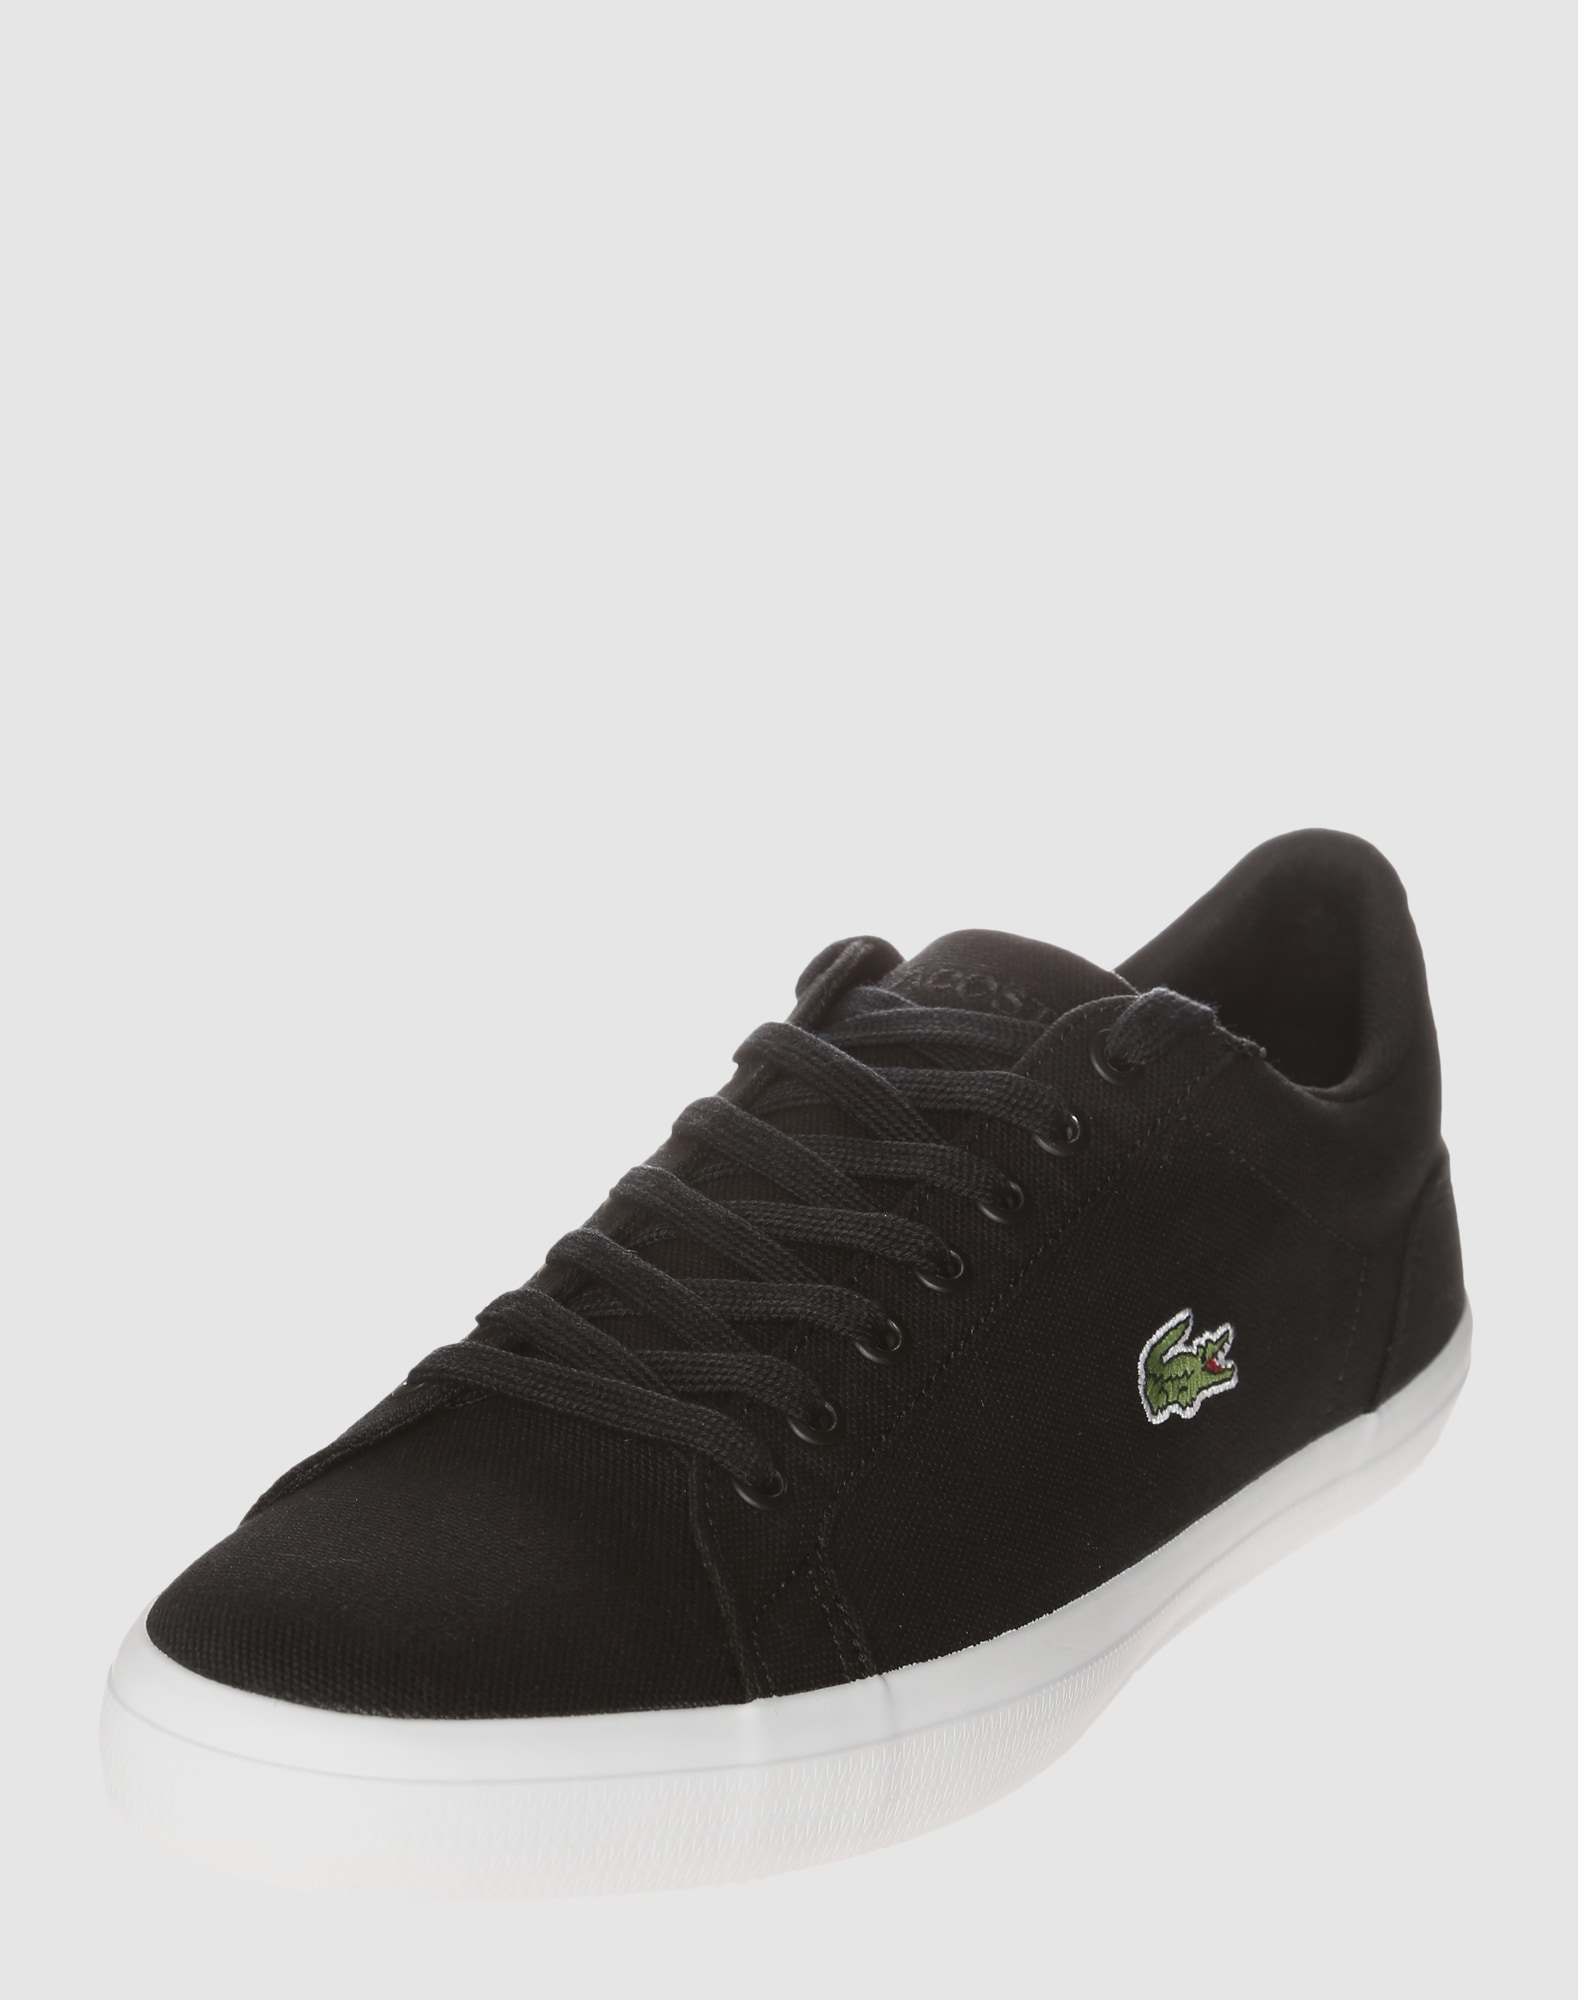 lacoste sneaker 39 lerond 39 in schwarz about you. Black Bedroom Furniture Sets. Home Design Ideas